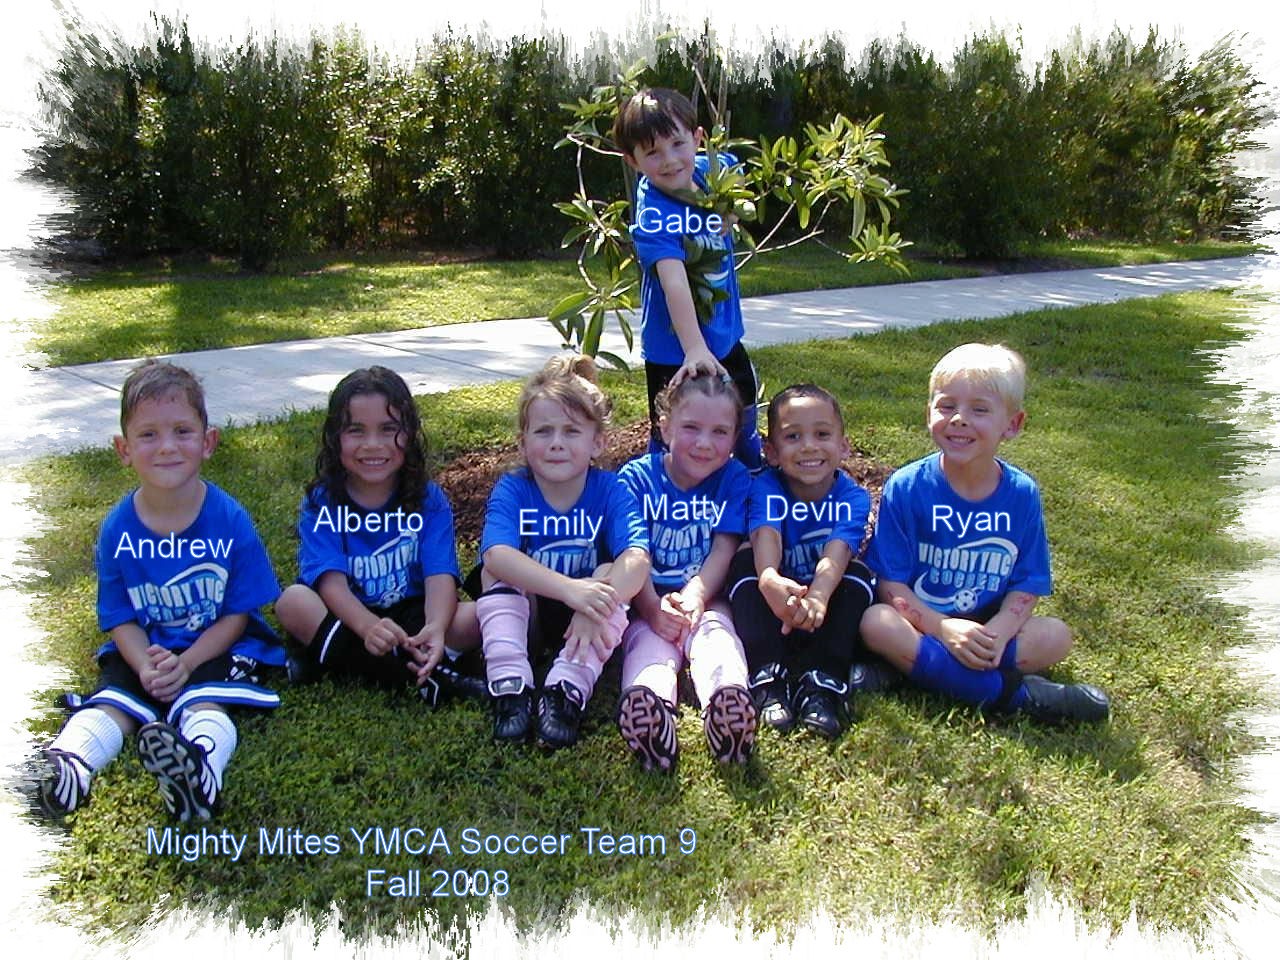 Mighty Mites YMCA Soccer Team 9